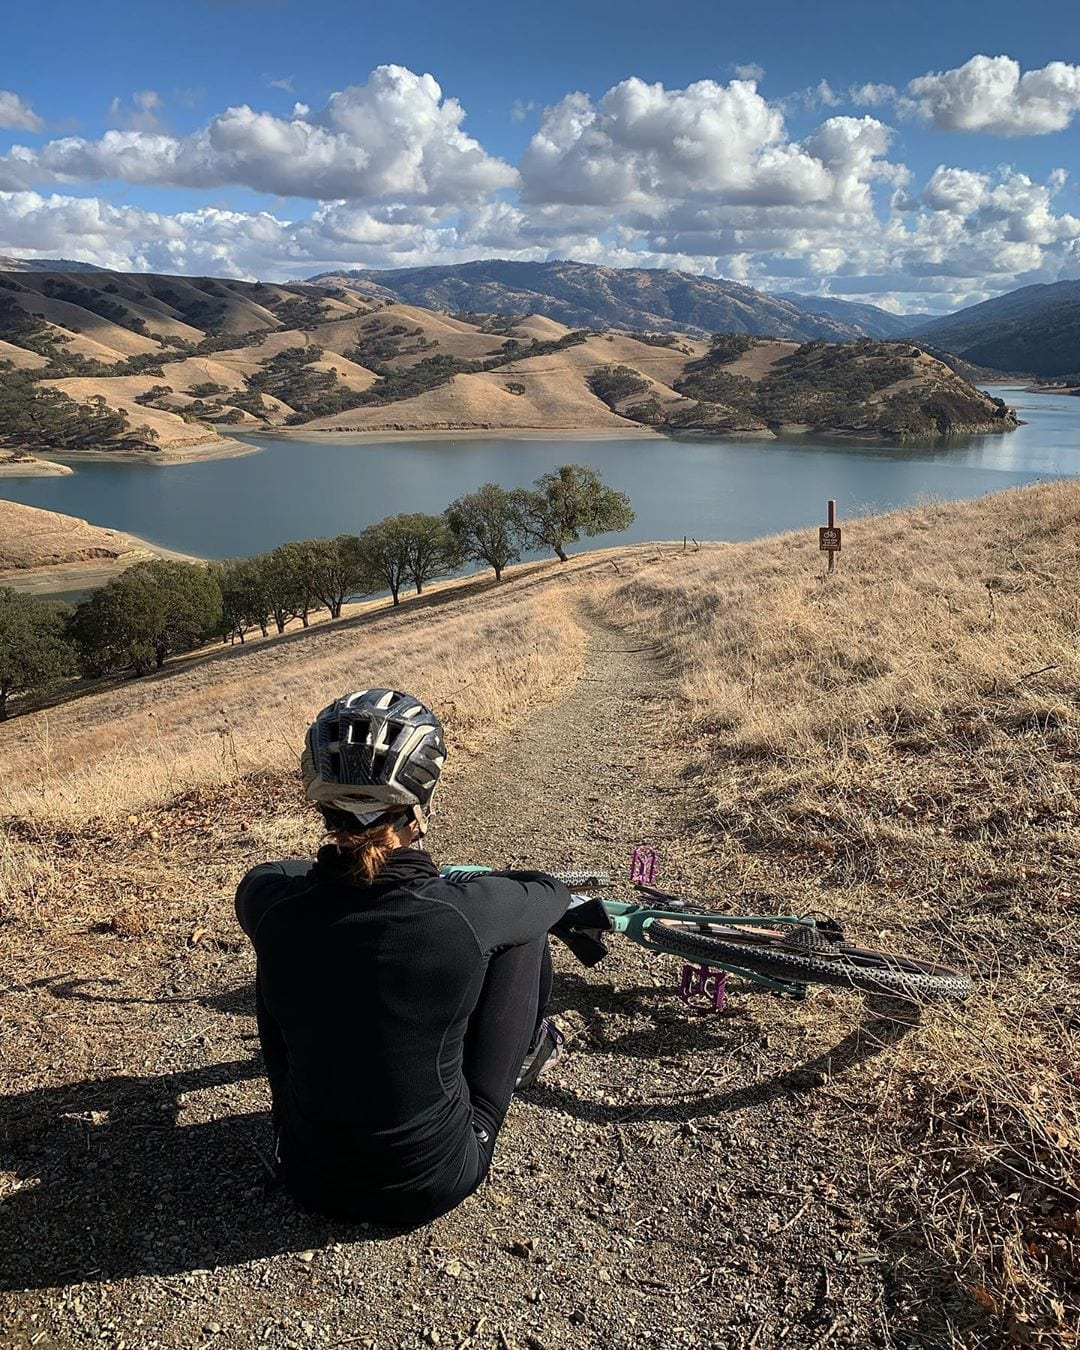 Bicyclist overlooking Lake Del Valle, Livermore, CA